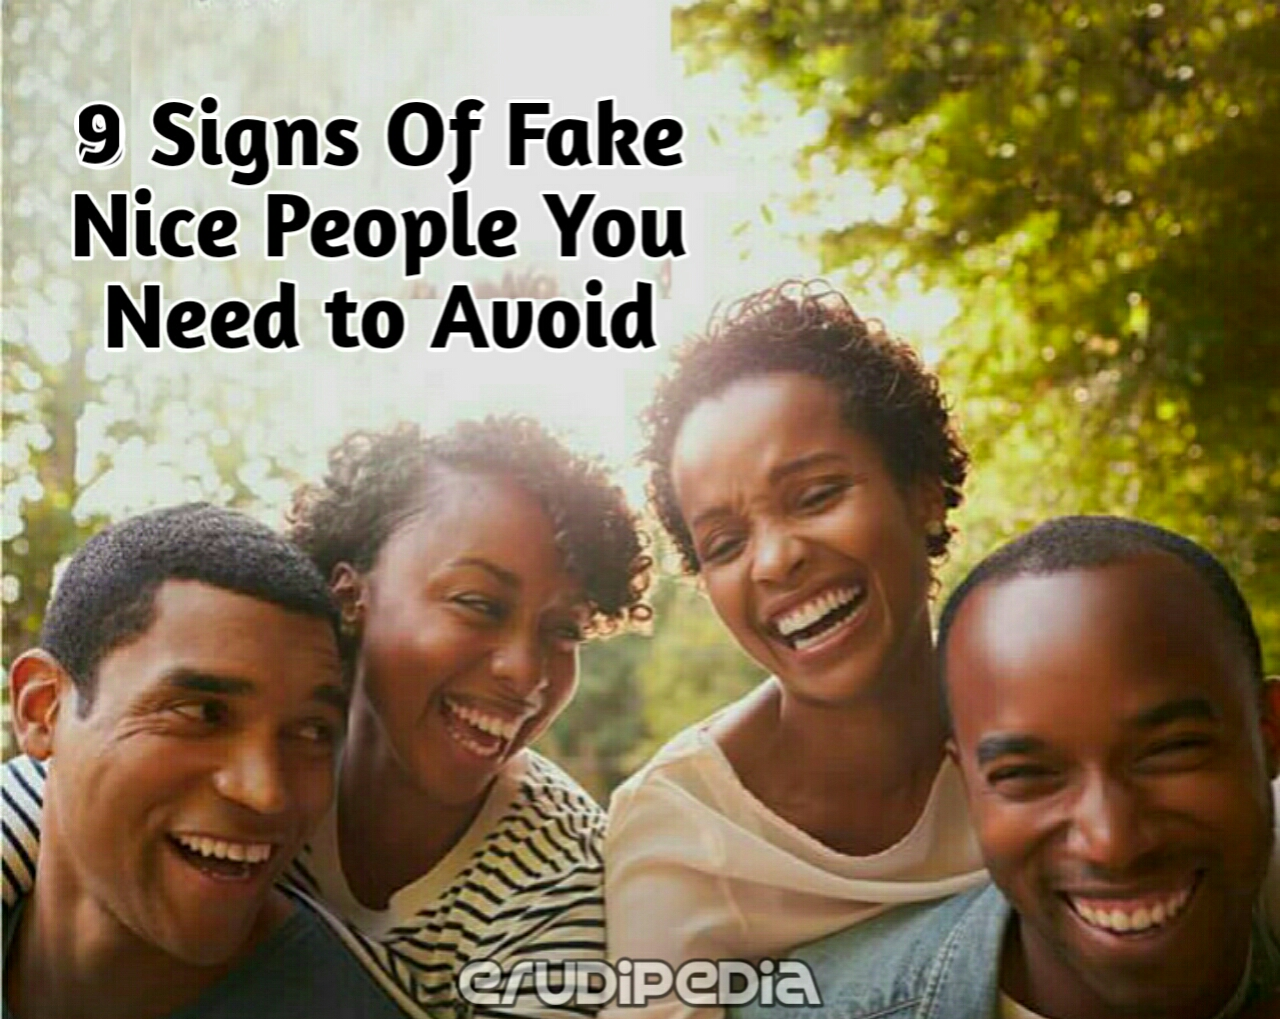 Signs of fake nice people